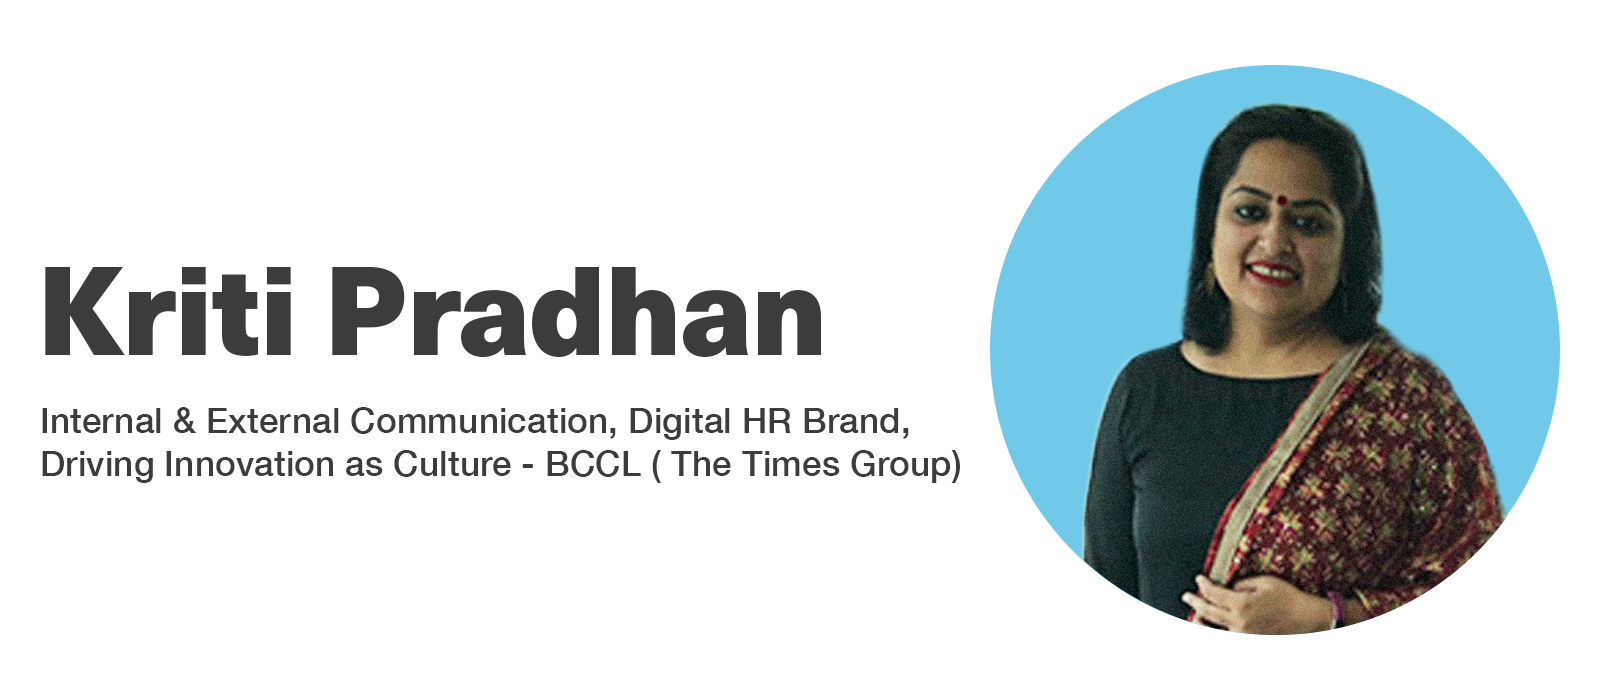 Kriti Pradhan COVID-19 and internal communications